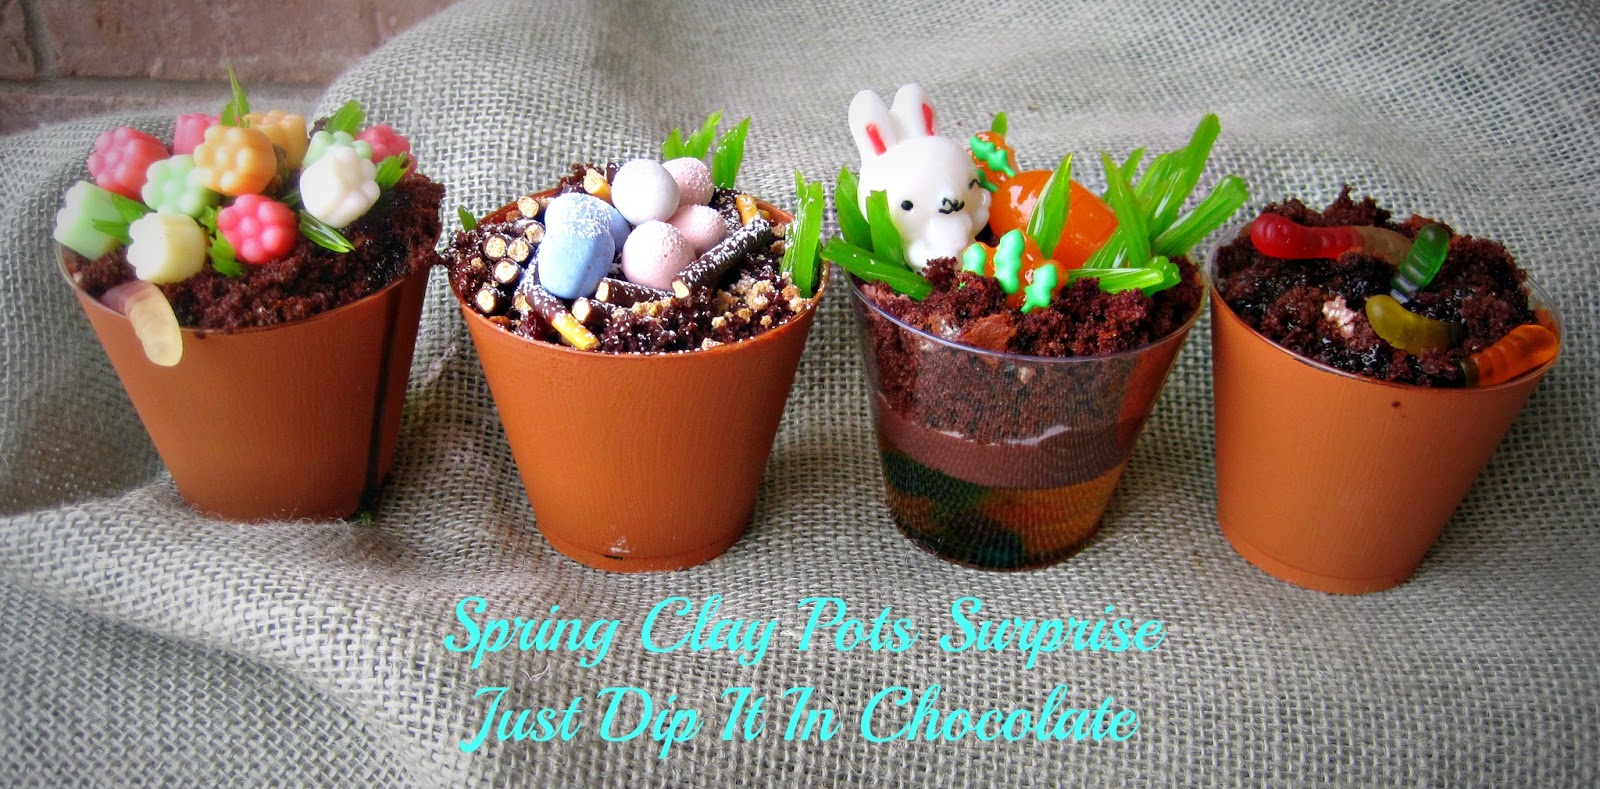 Just Dip It In Chocolate & Just Dip It In Chocolate: Spring Clay Pots with a Surprise ...